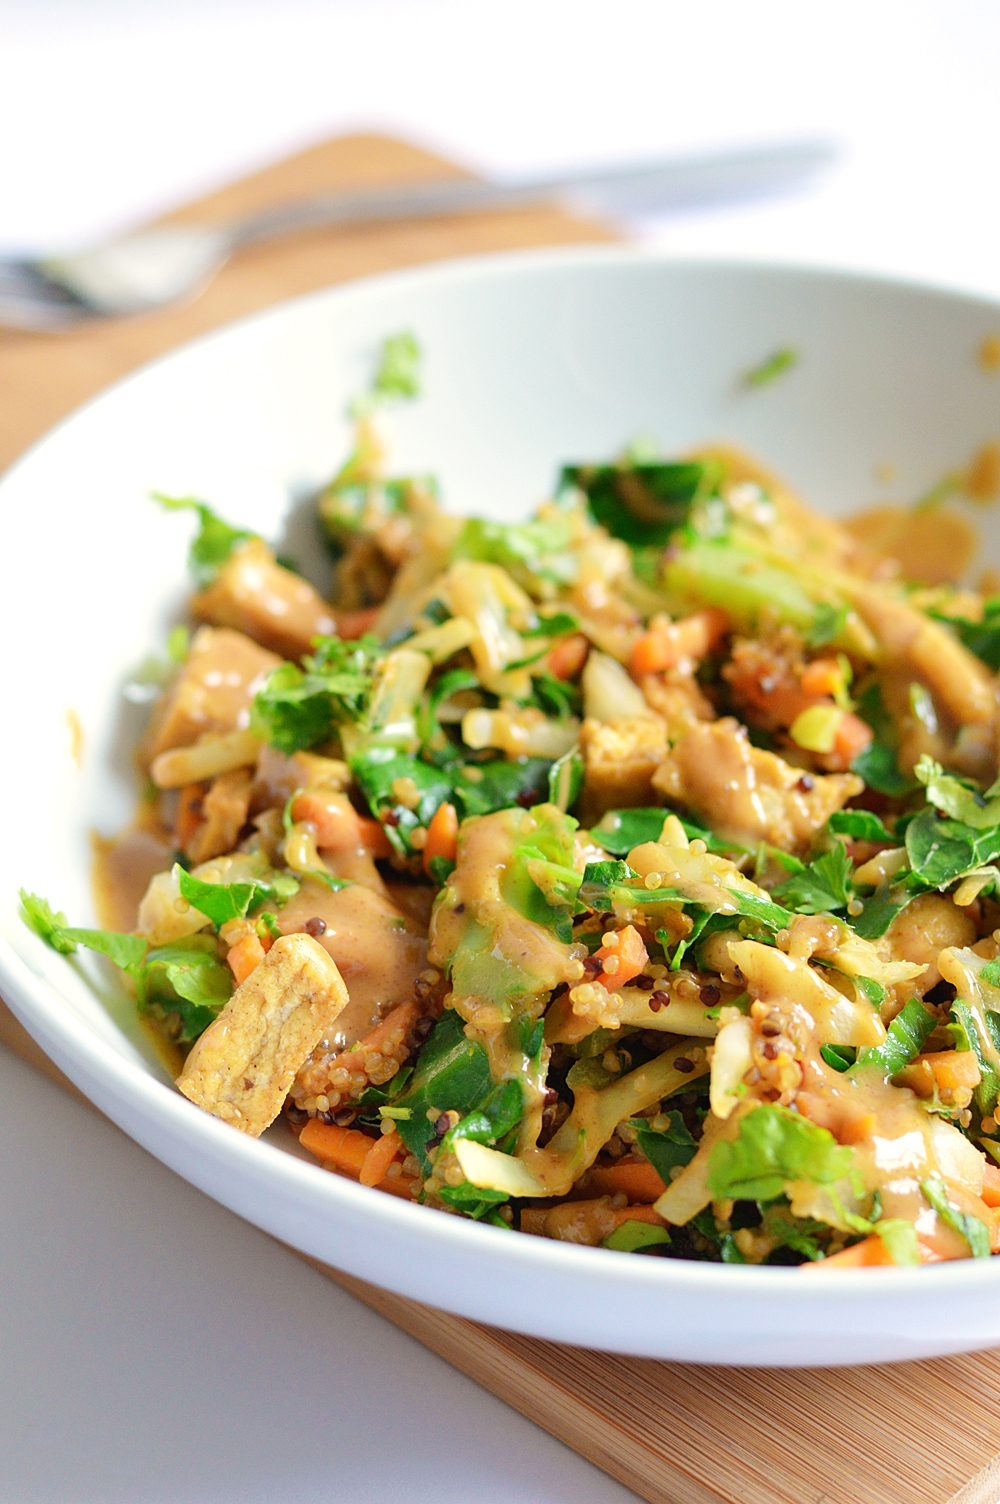 Tofu and peanut stir fry 3